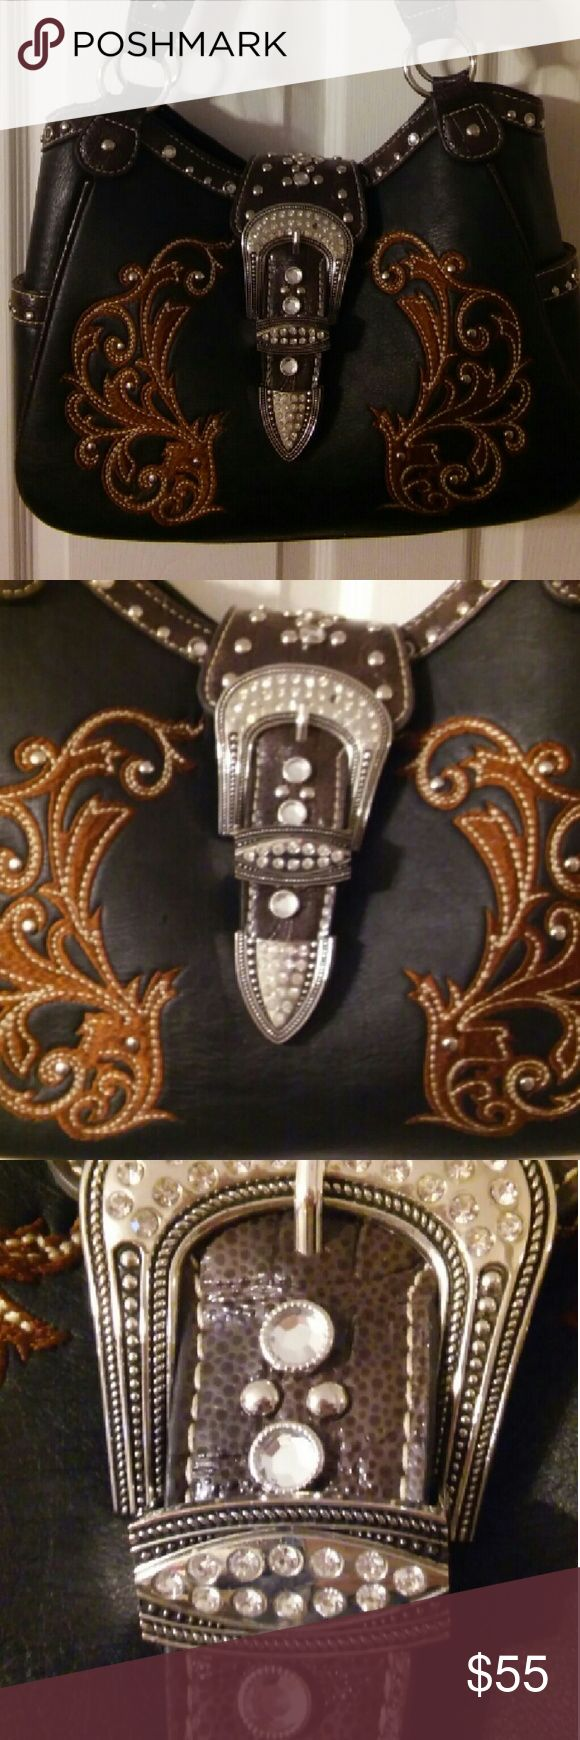 Western Style Leather w/Bling Purse Western Style Embroidered Leather with Bling Purse Bags Shoulder Bags